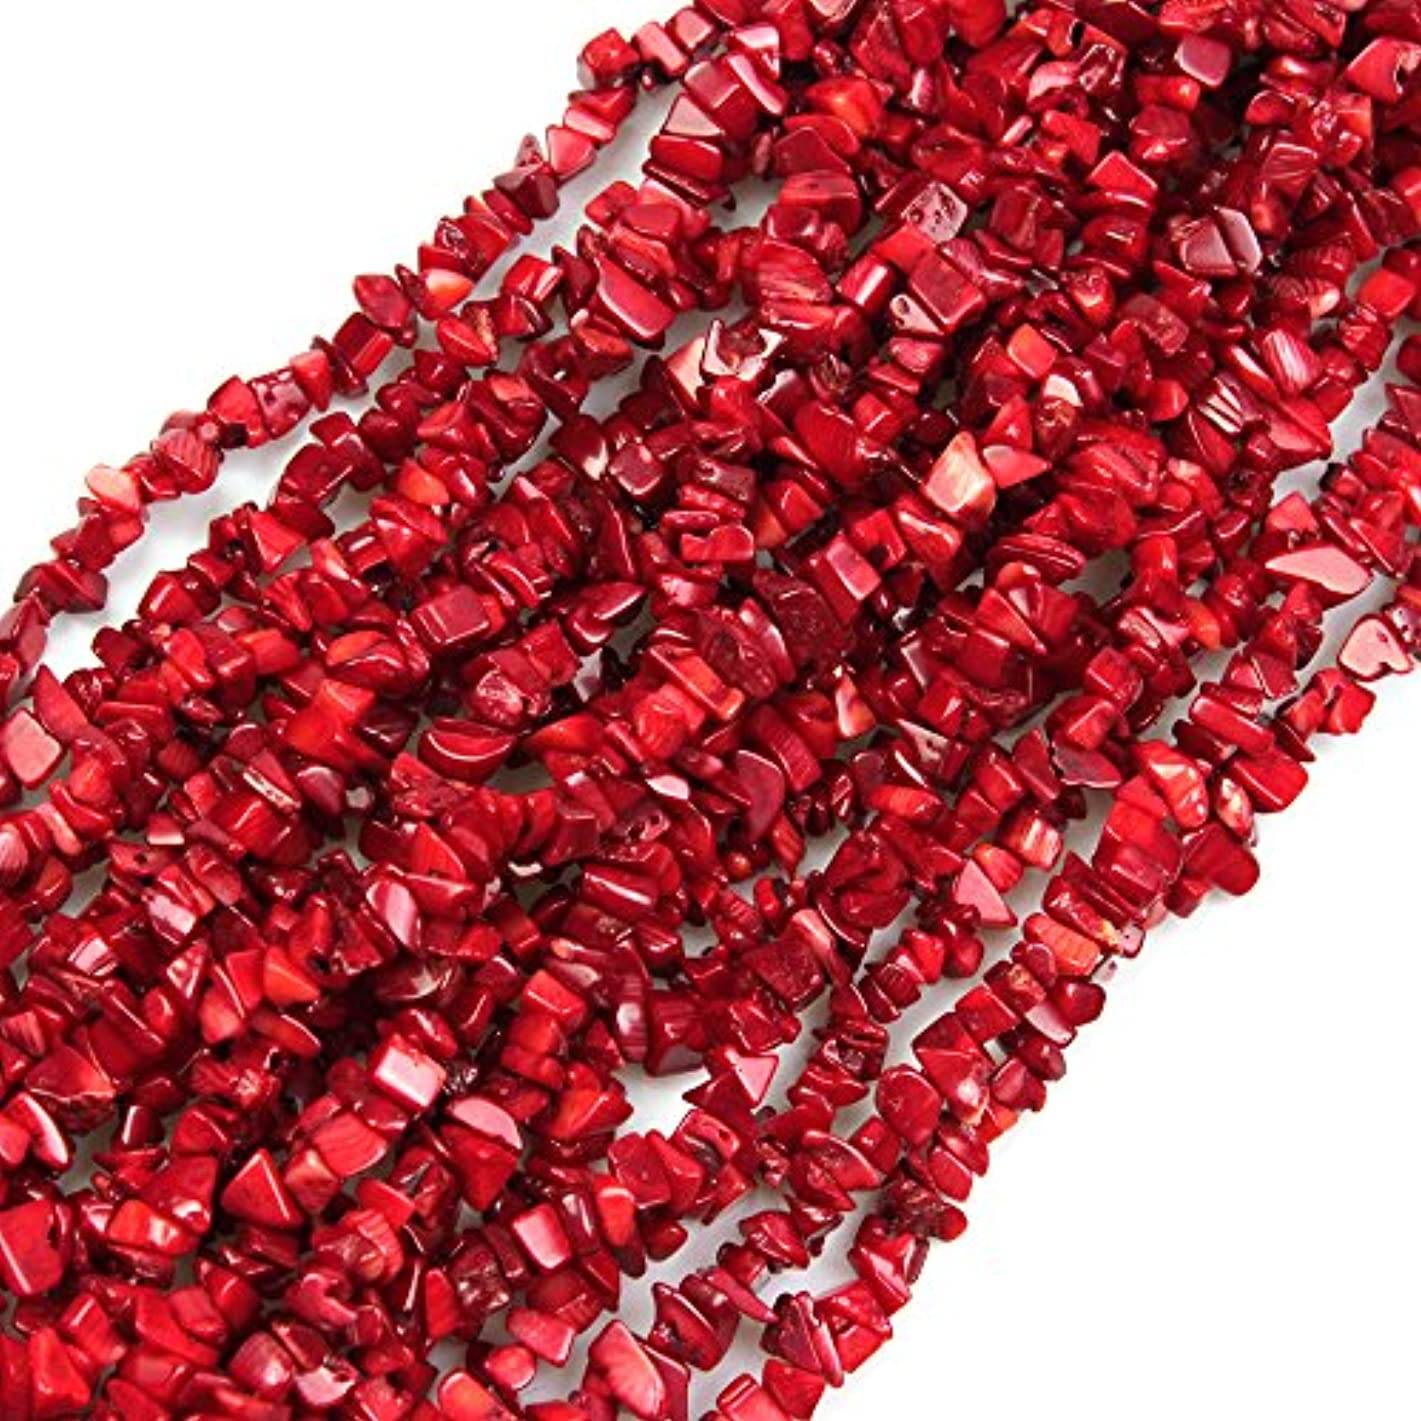 JARTC Natural Irregular Broken Red Coral Chip 6-8mm 15 Inch Agate Crystal Chip for Jewelry Making DIY Bracelet Necklace Accessory